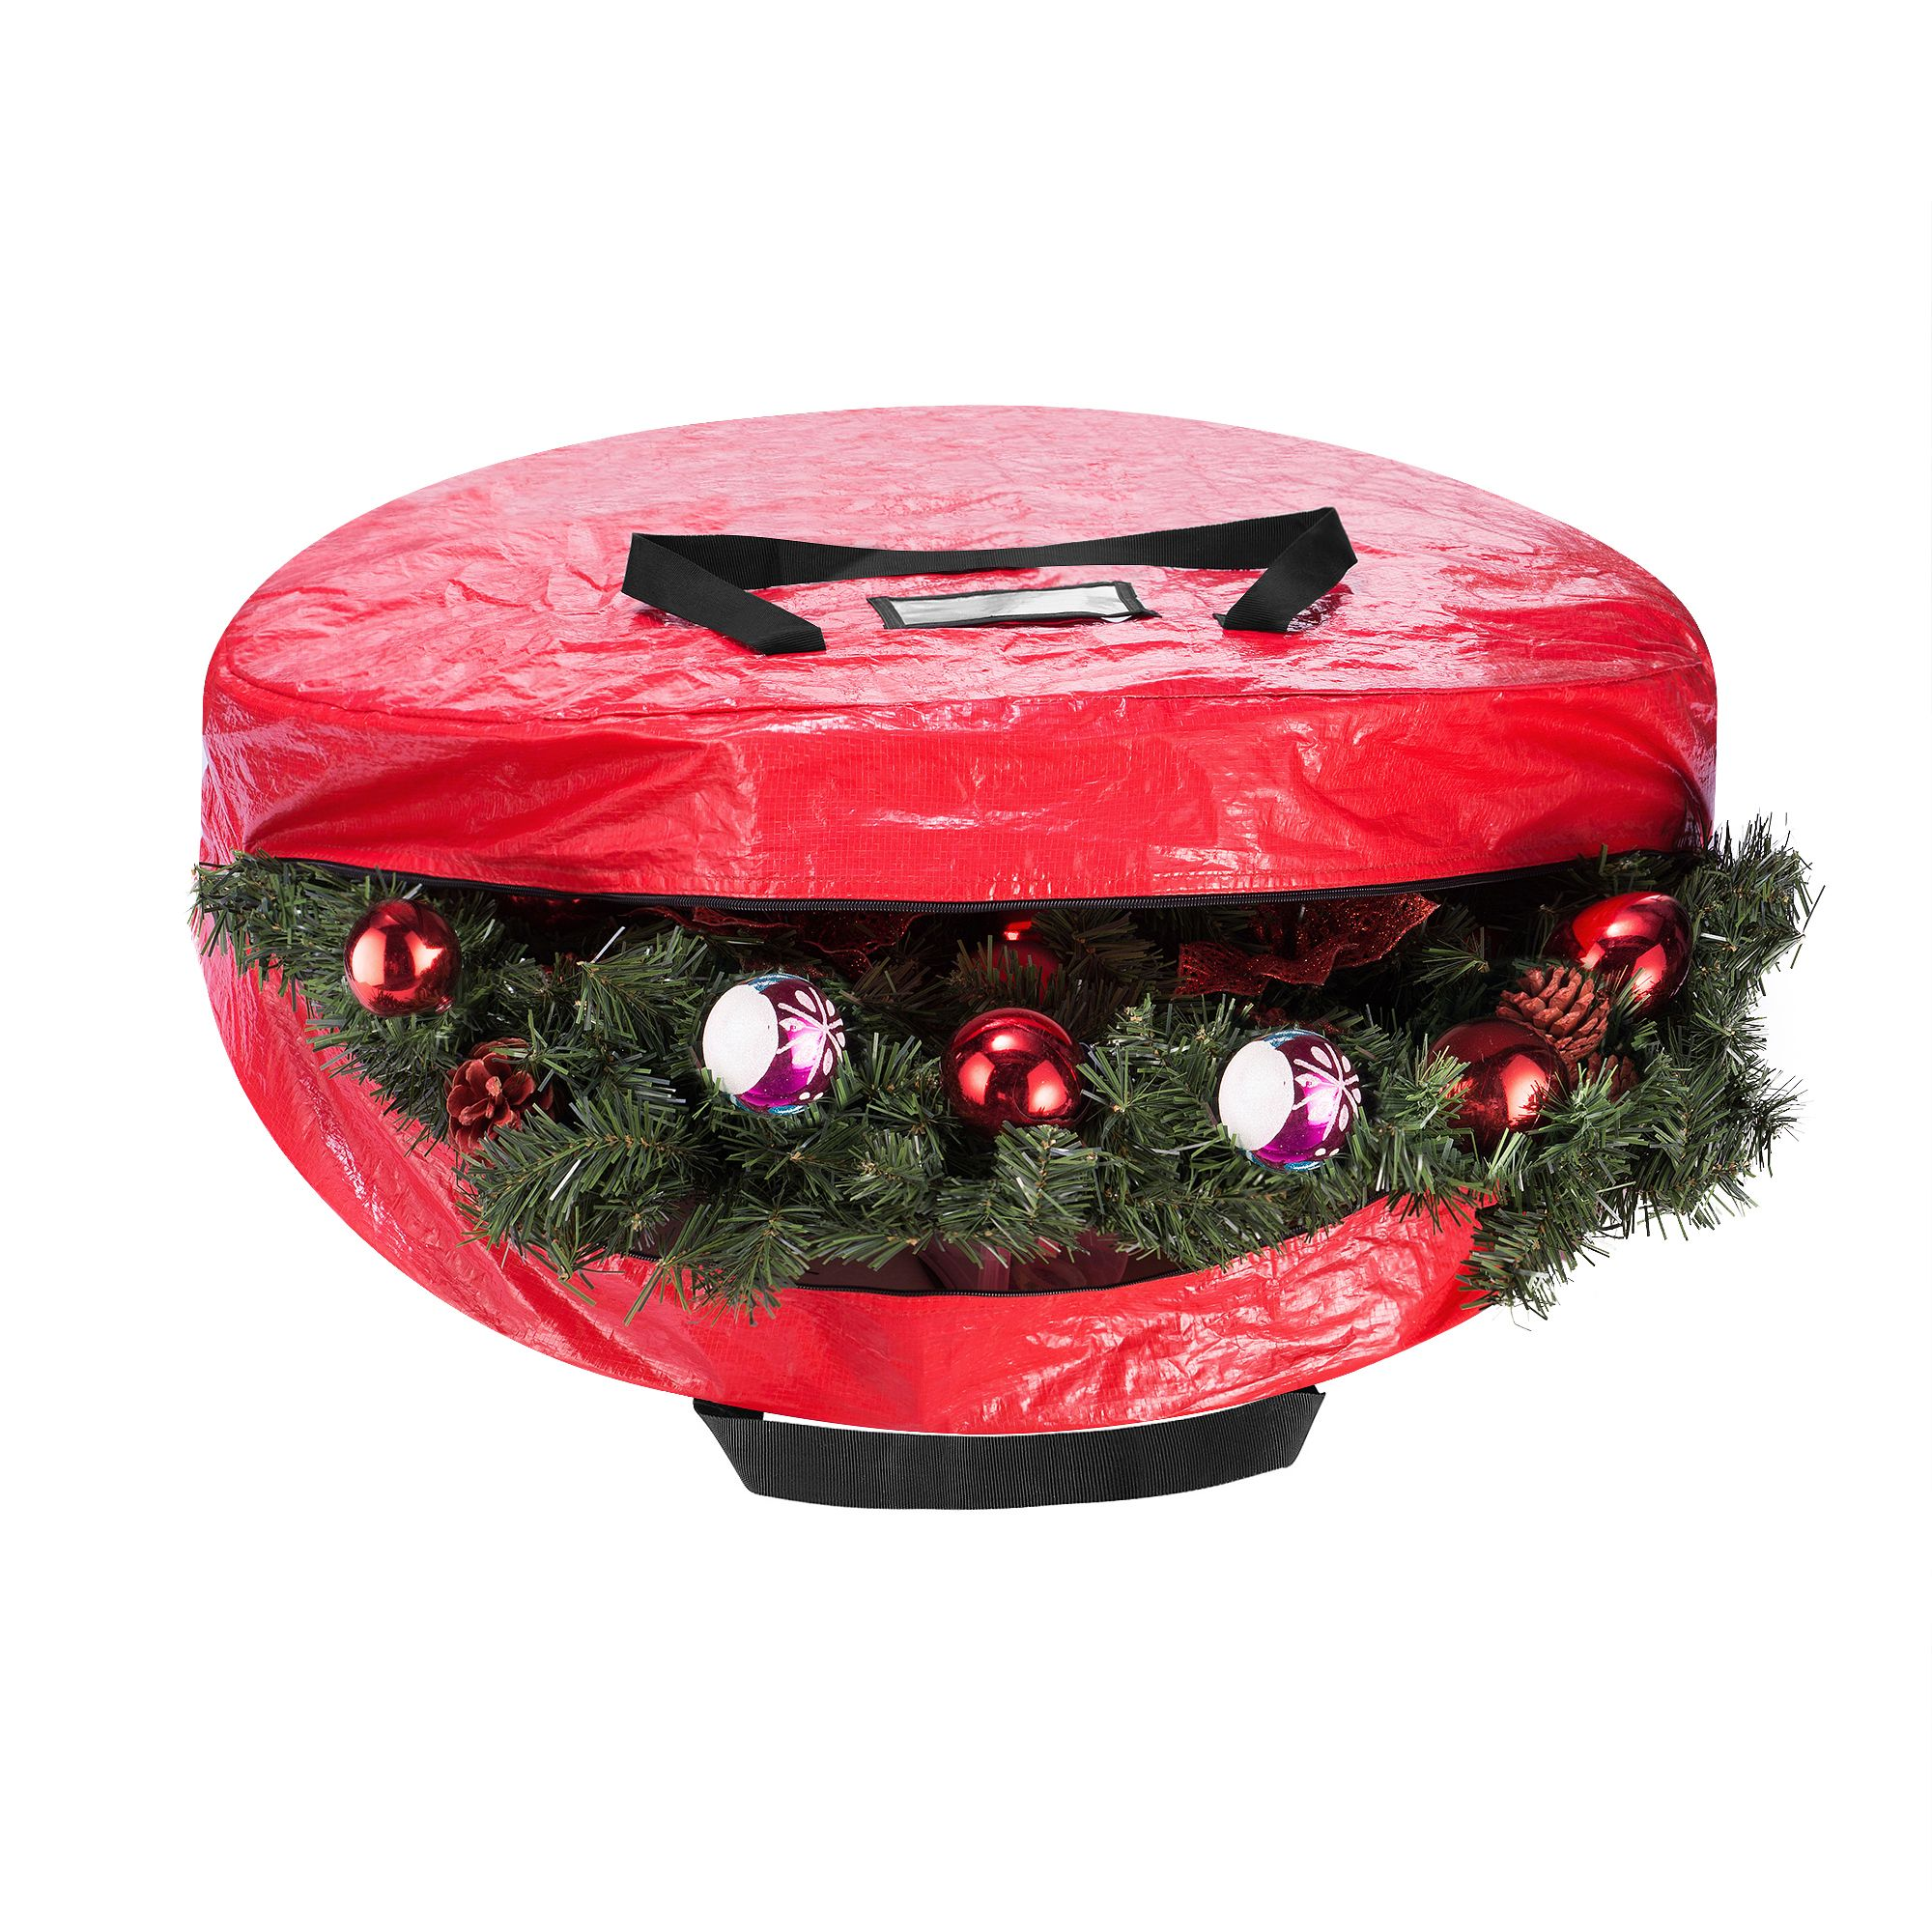 Christmas Tree And Wreath Combo Storage Bag Holds Up To 9 Ft Tree And 30 Diameter Wreath Tear Proof Holiday Decor Organization By Elf Stor Red Walmart Co Christmas Tree Storage Bag Christmas